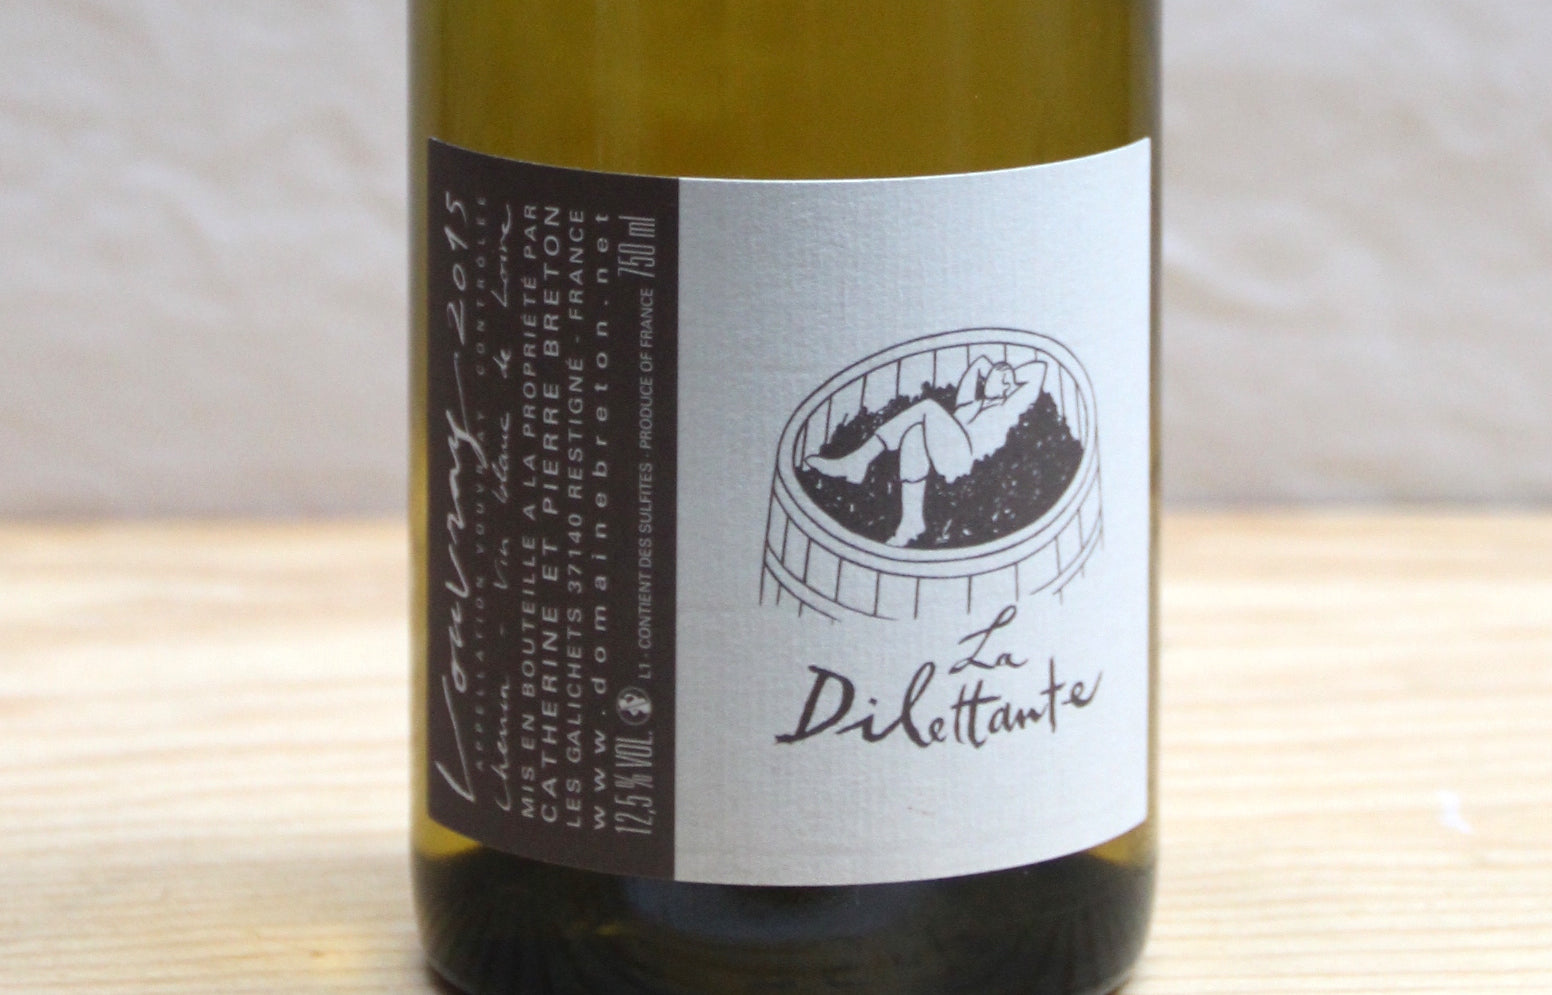 Vouvray La Dilettante sec 2015 - Domaine Breton - SOLD OUT